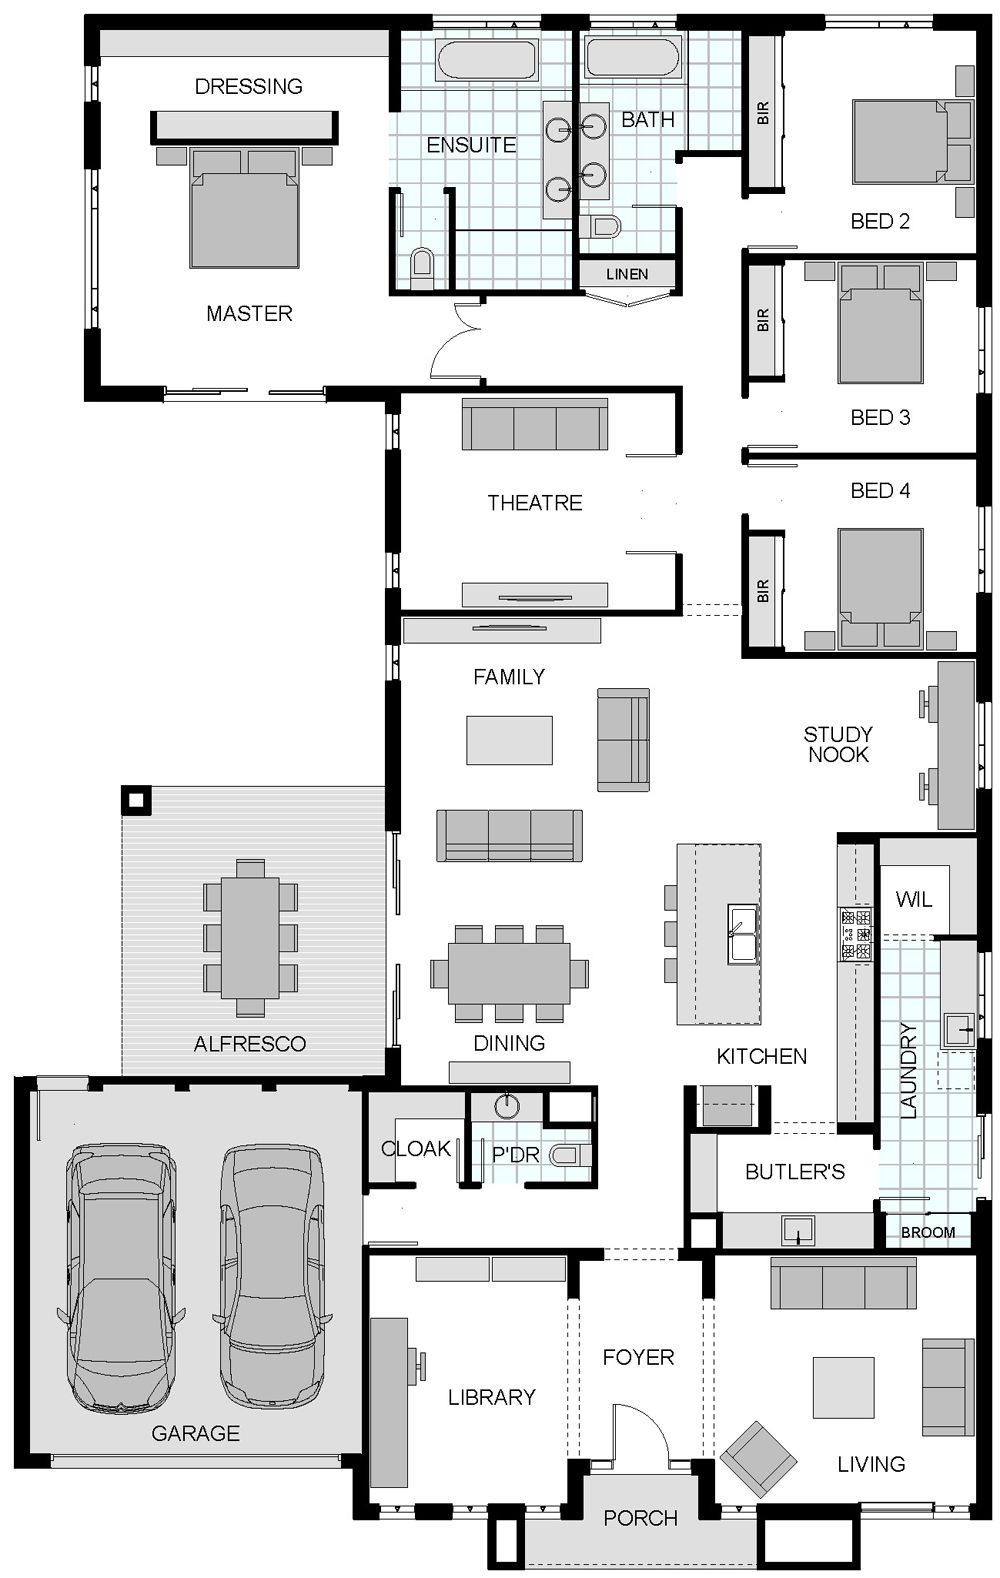 floorplan | dreaming (home ideas) | pinterest | pantry, house and